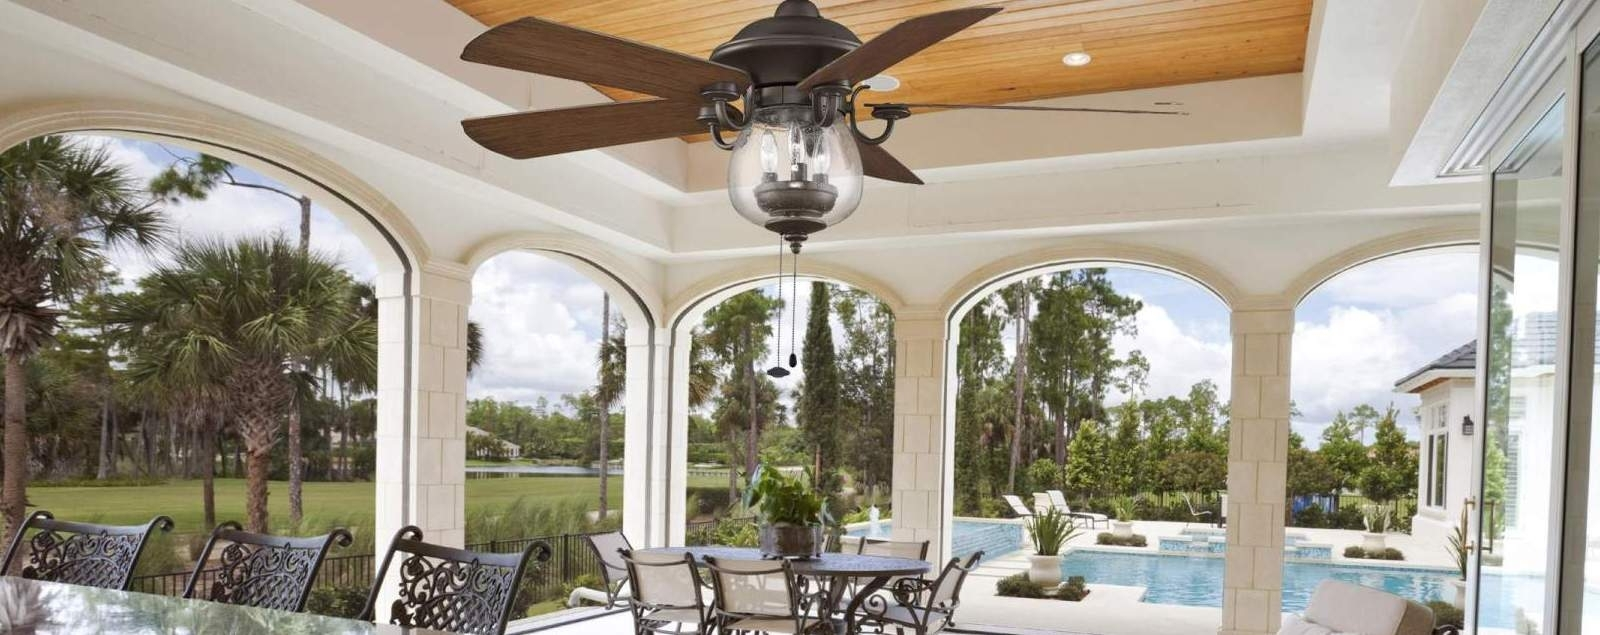 Best And Newest Outdoor Ceiling Fans – Shop Wet, Dry, And Damp Rated Outdoor Fans Intended For Hurricane Outdoor Ceiling Fans (View 10 of 20)